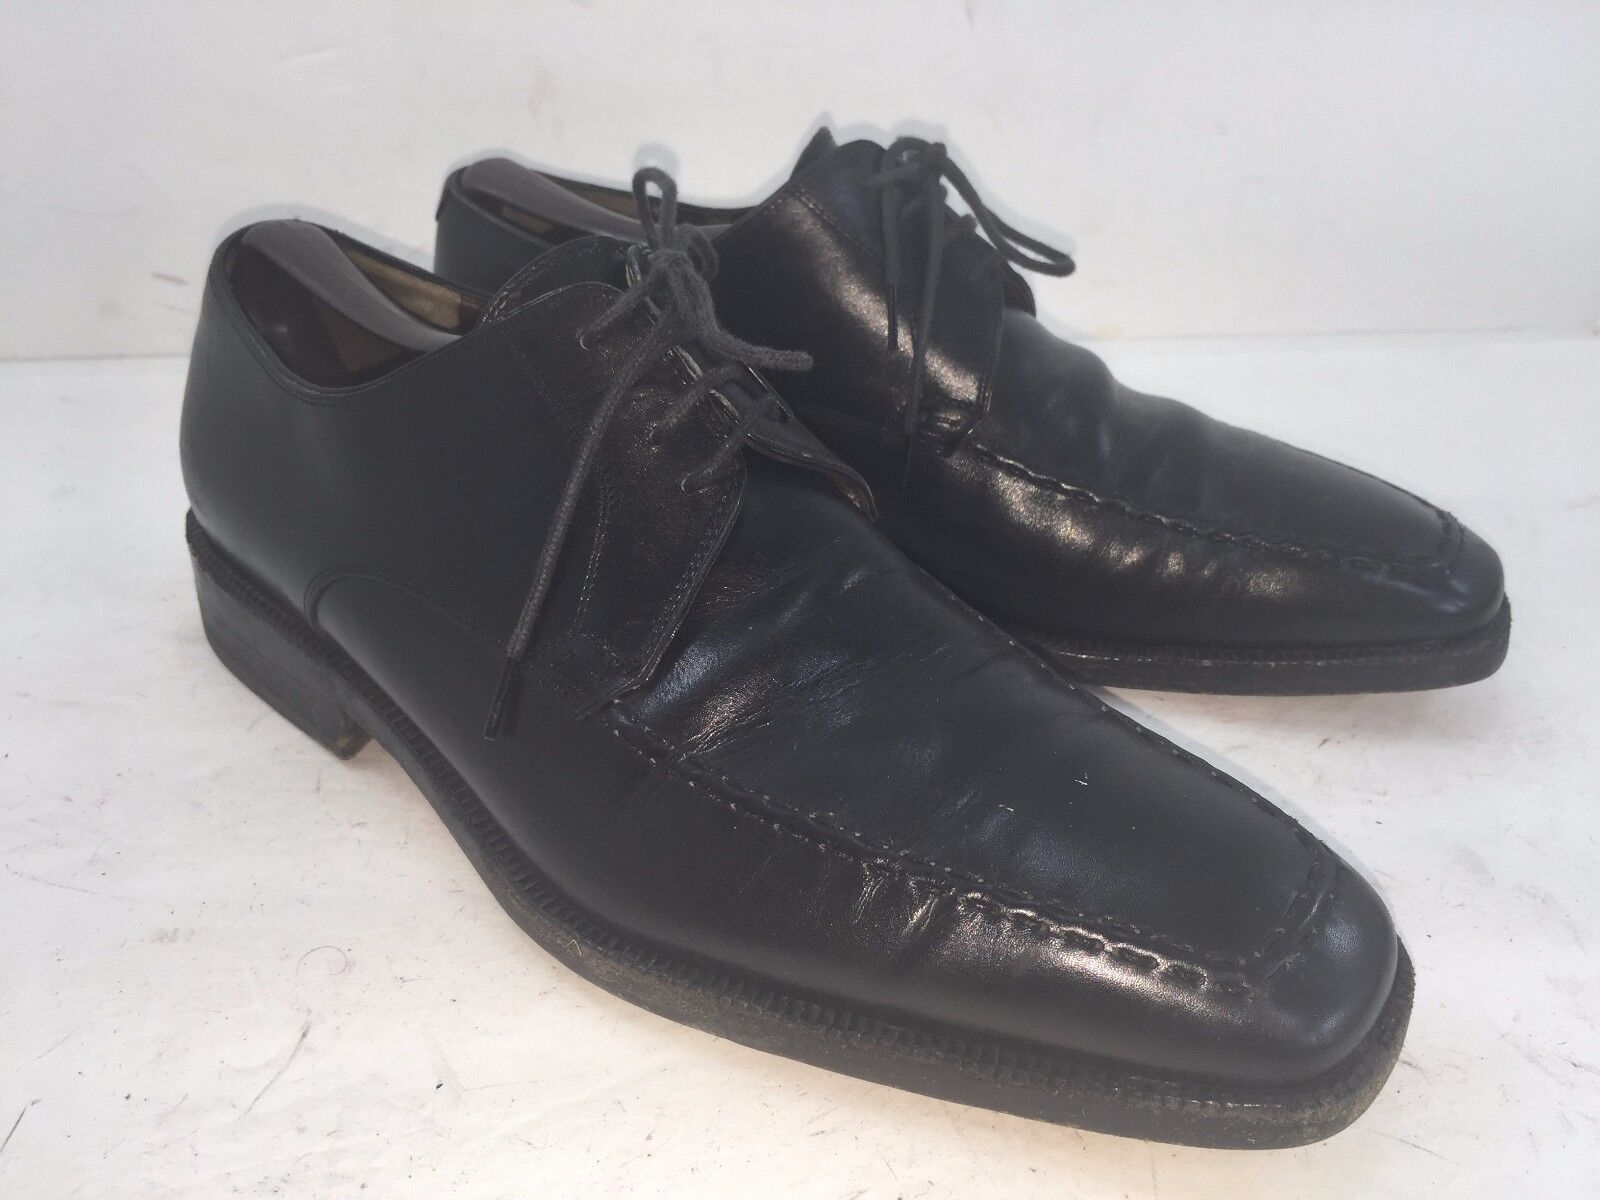 FRATELLI ROSSETTI MADE IN ITALY IN GREAT CONDITION UK 8.5 (USA 9.5) schwarz